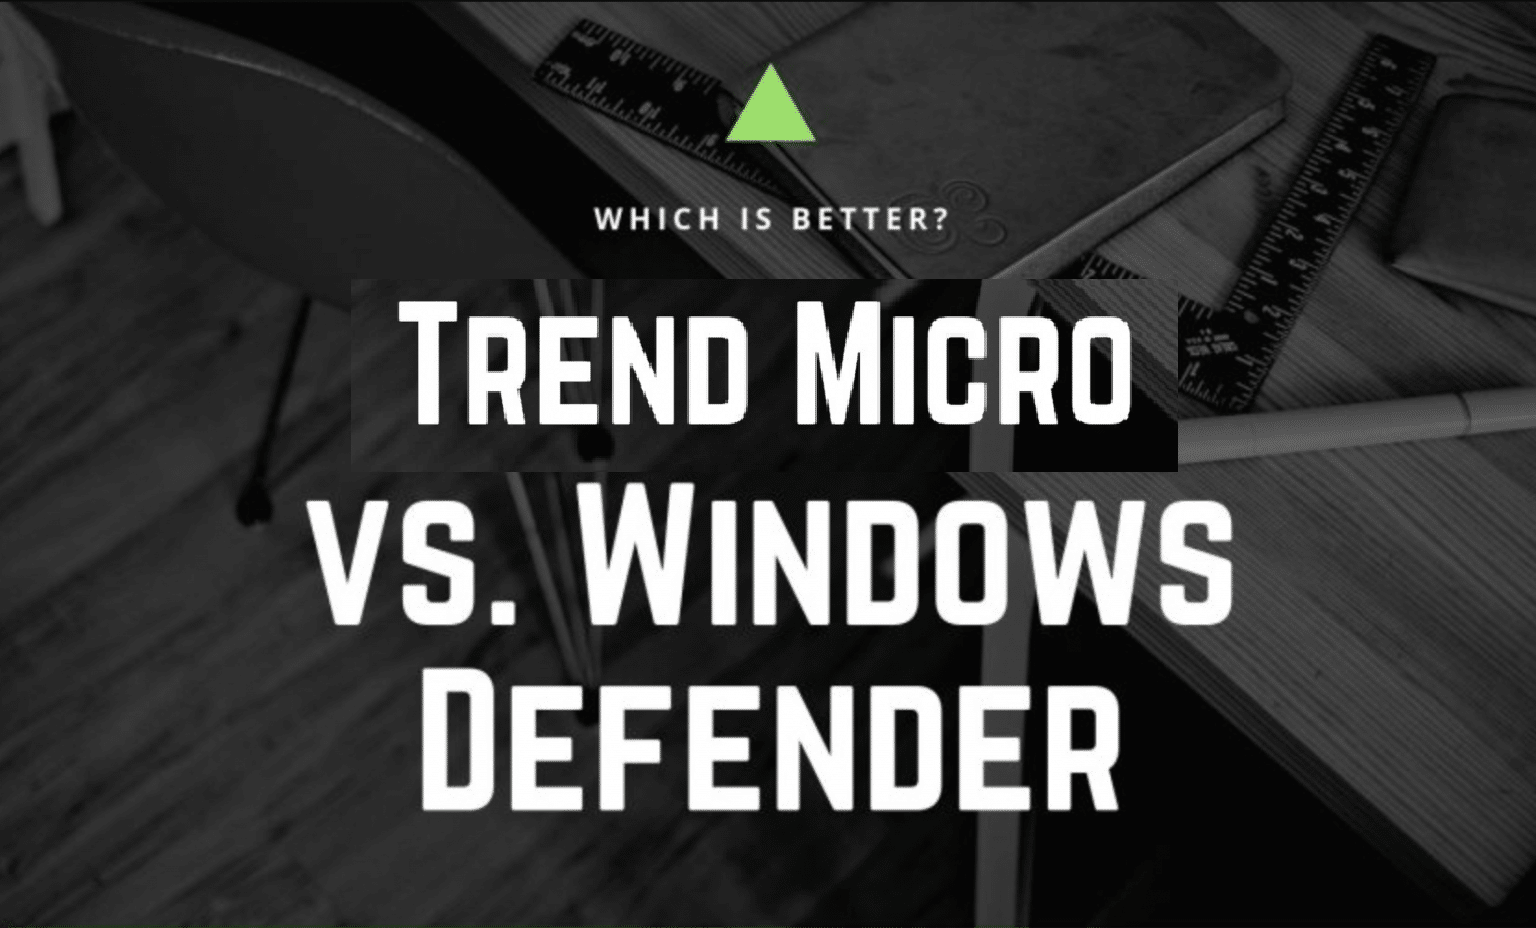 trend micro vs windows defender